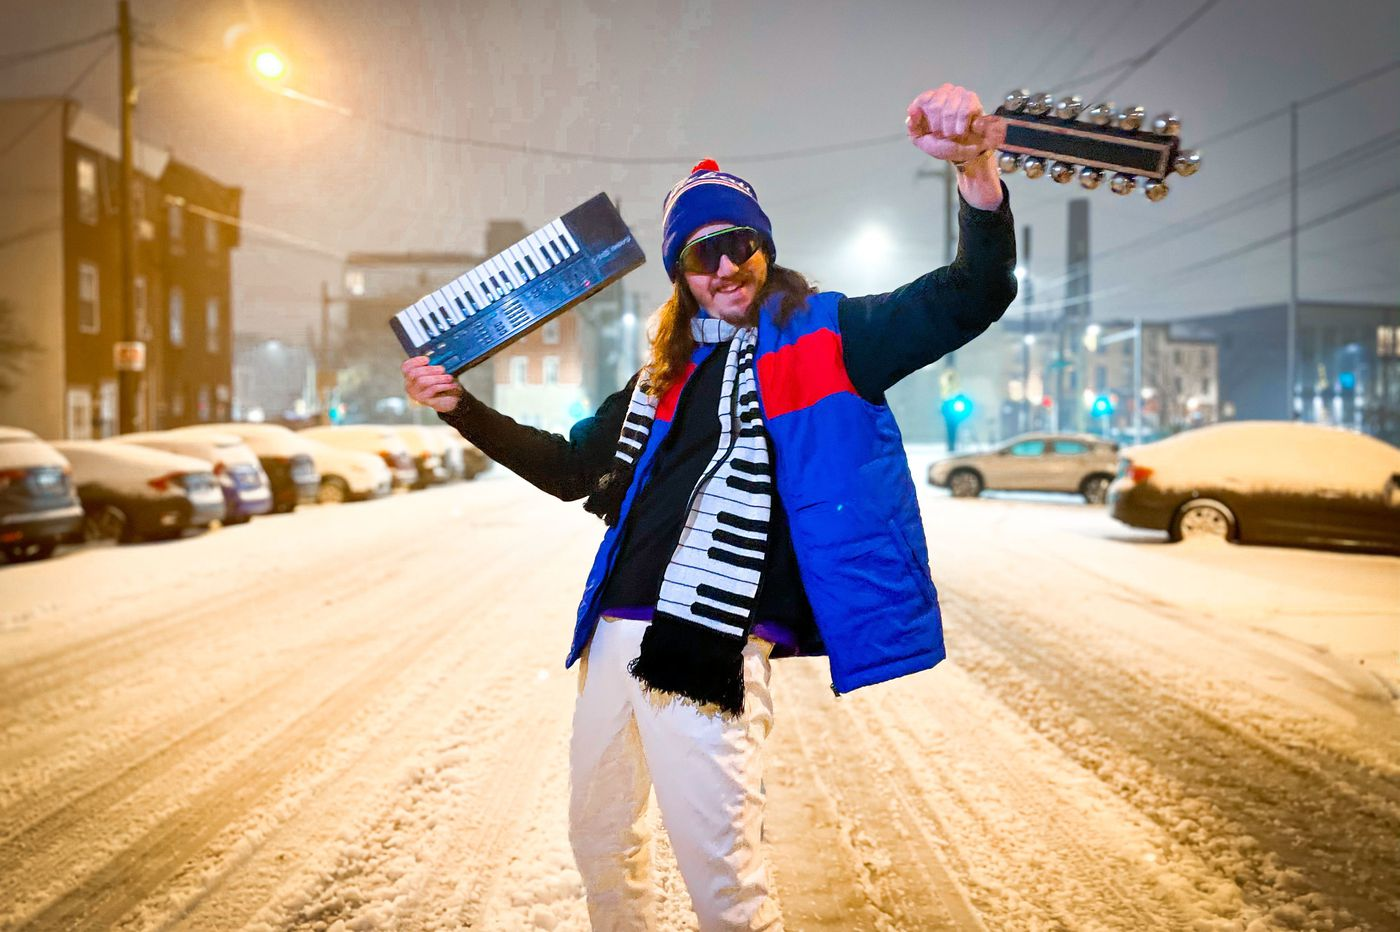 Have a merry little Philly-band Christmas. All your favorite acts have new holiday songs.